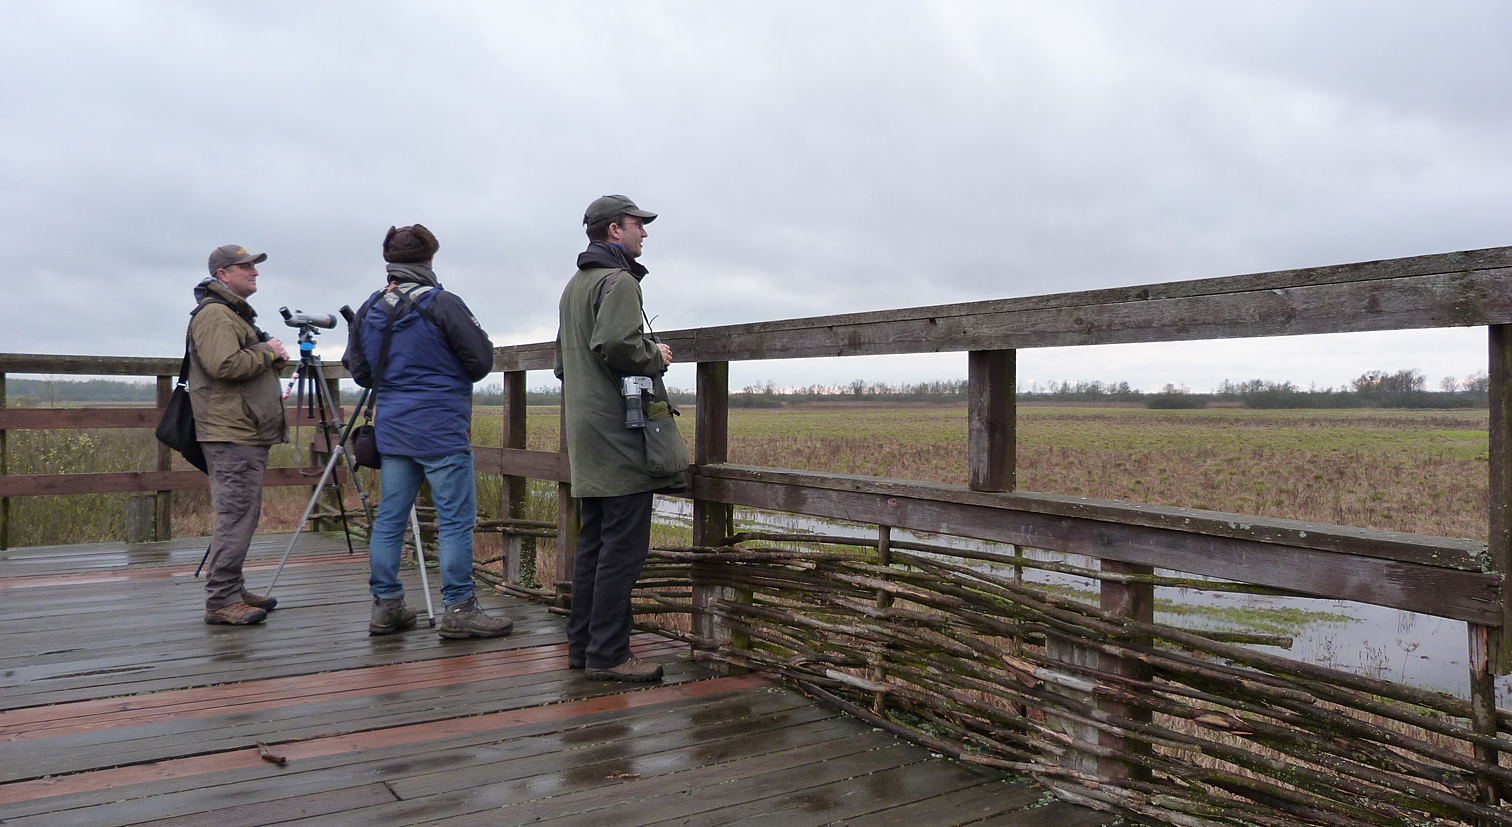 BUBO lads on the Great Snipe viewing platform